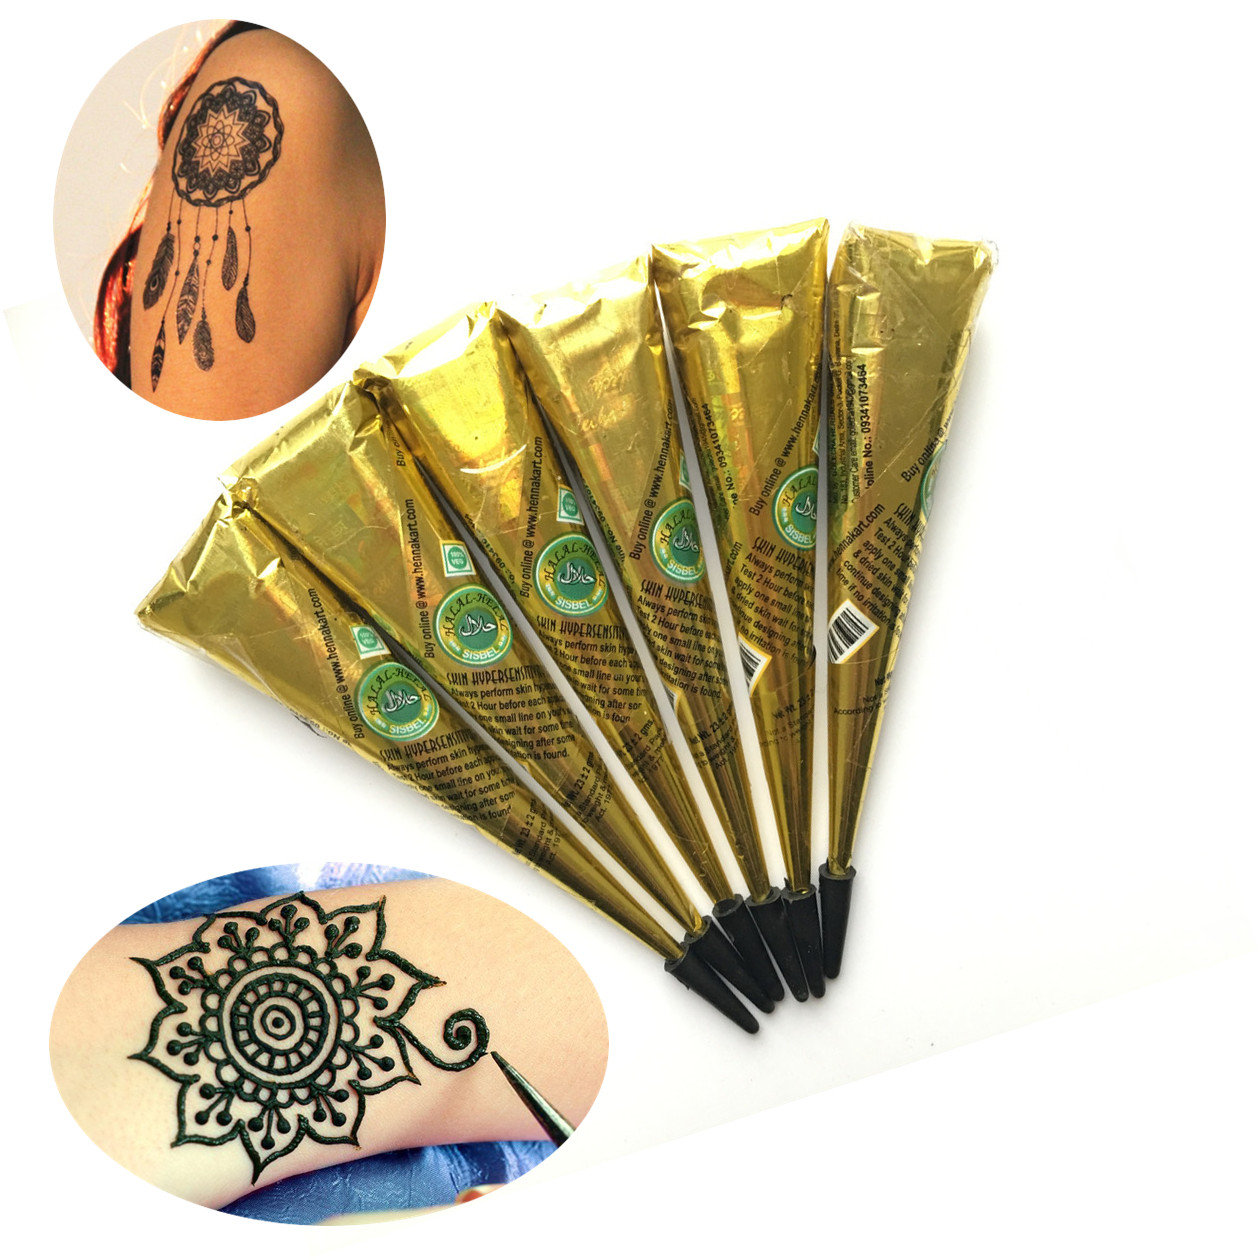 Inflicting Ink Tattoo Henna Themed Tattoos: 6PC/LOT Waterproof Henna Tattoo Paste Cones Brown Ink